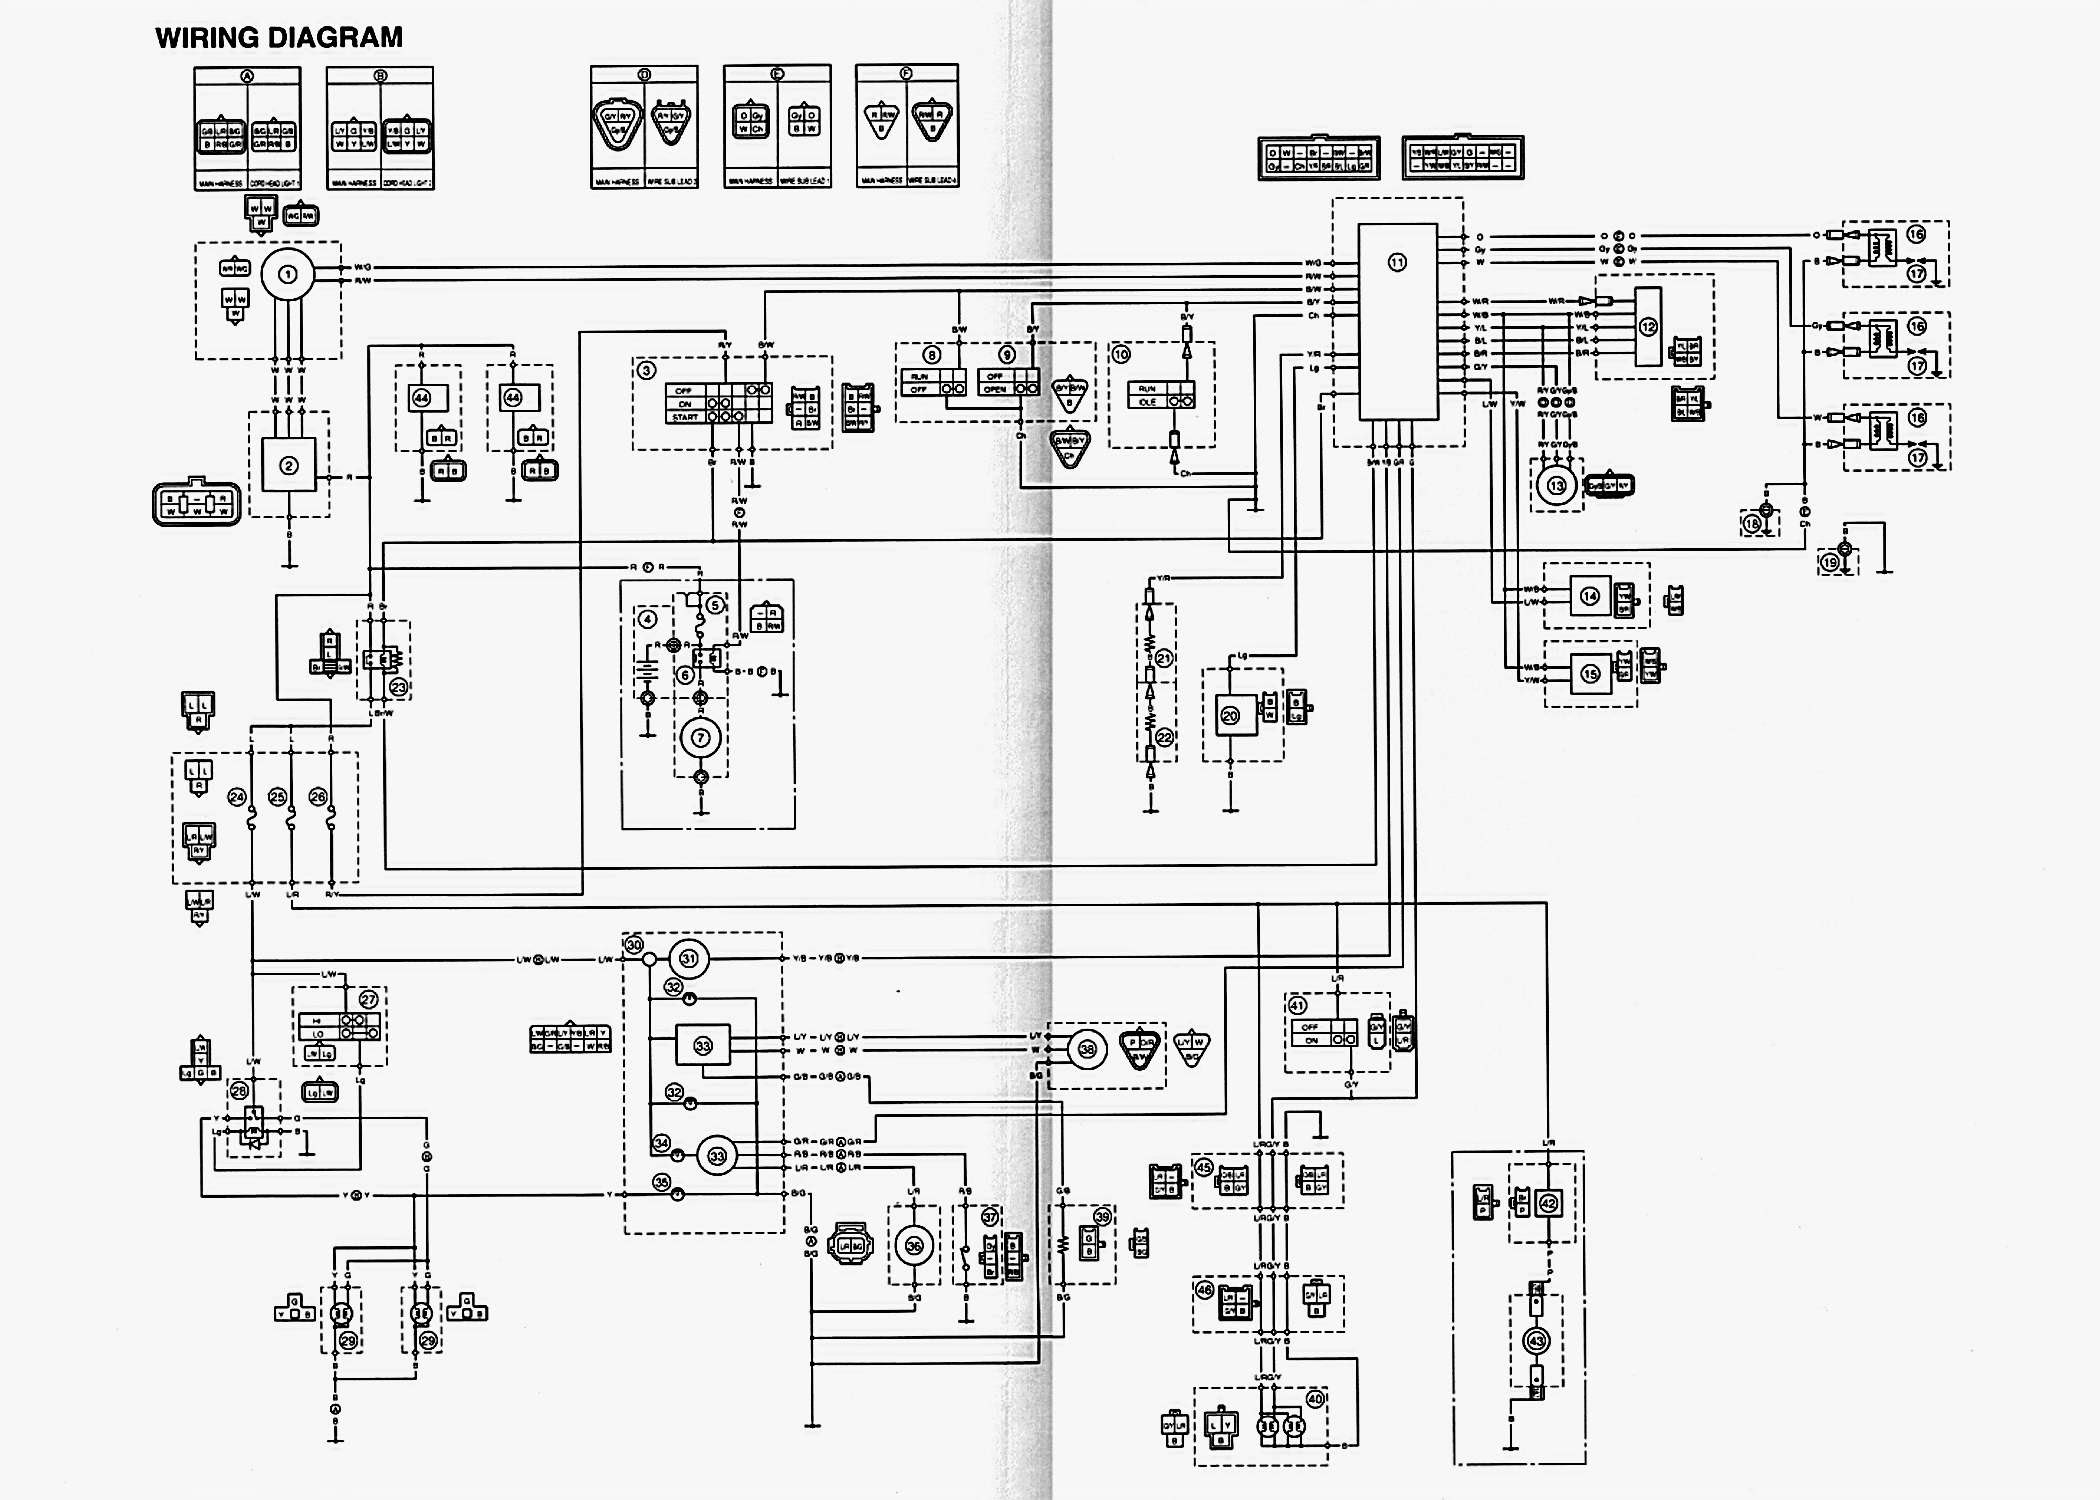 2001 yamaha phazer 500 wiring diagram - wiring diagrams button bell-breed -  bell-breed.lamorciola.it  bell-breed.lamorciola.it